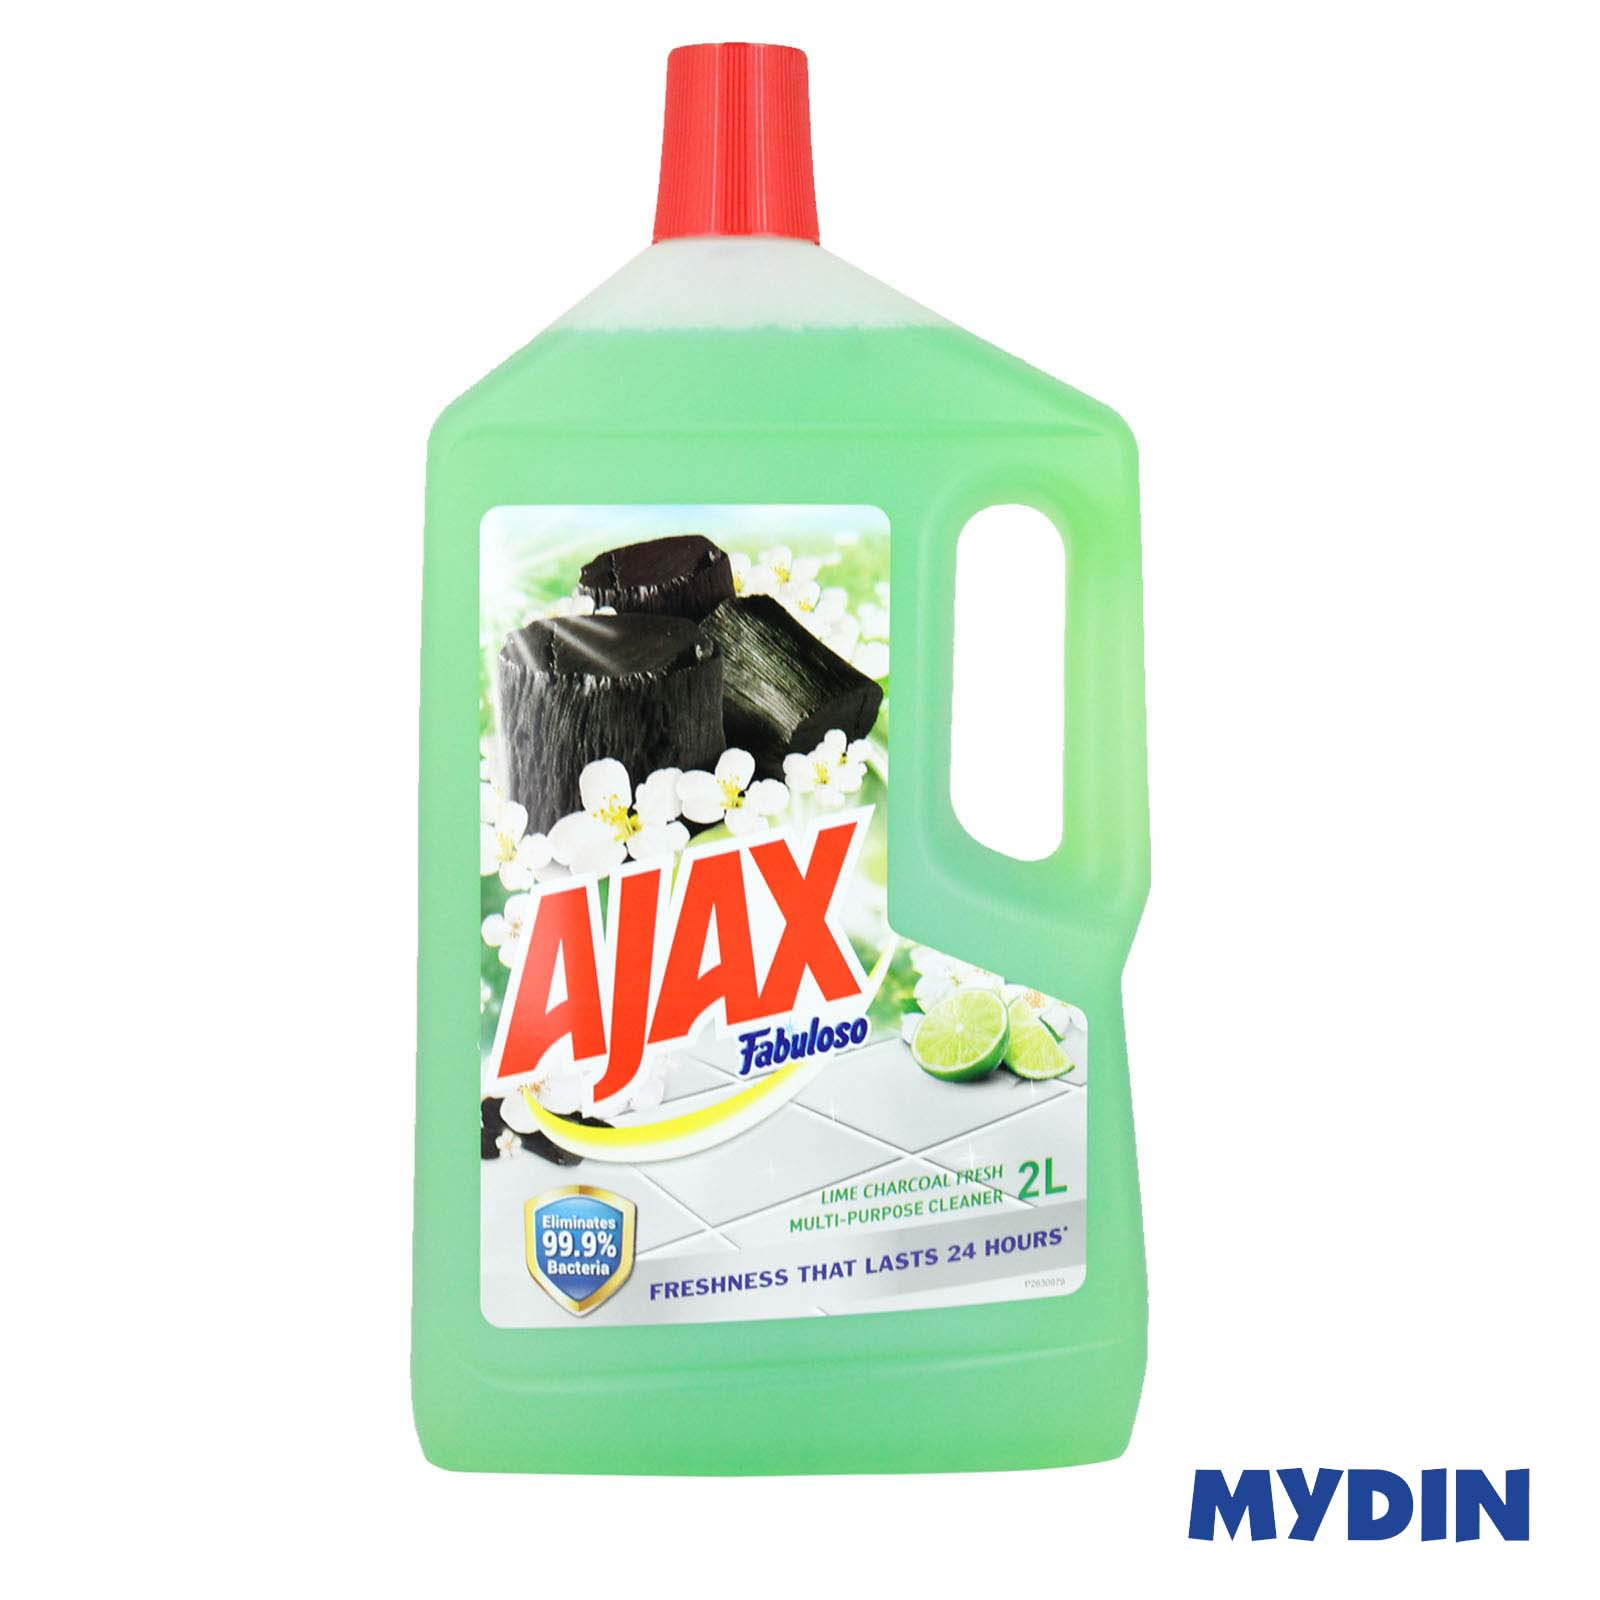 Ajax Fabuloso Lime Charcoal Multi Purpose Floor Cleaner (2L)